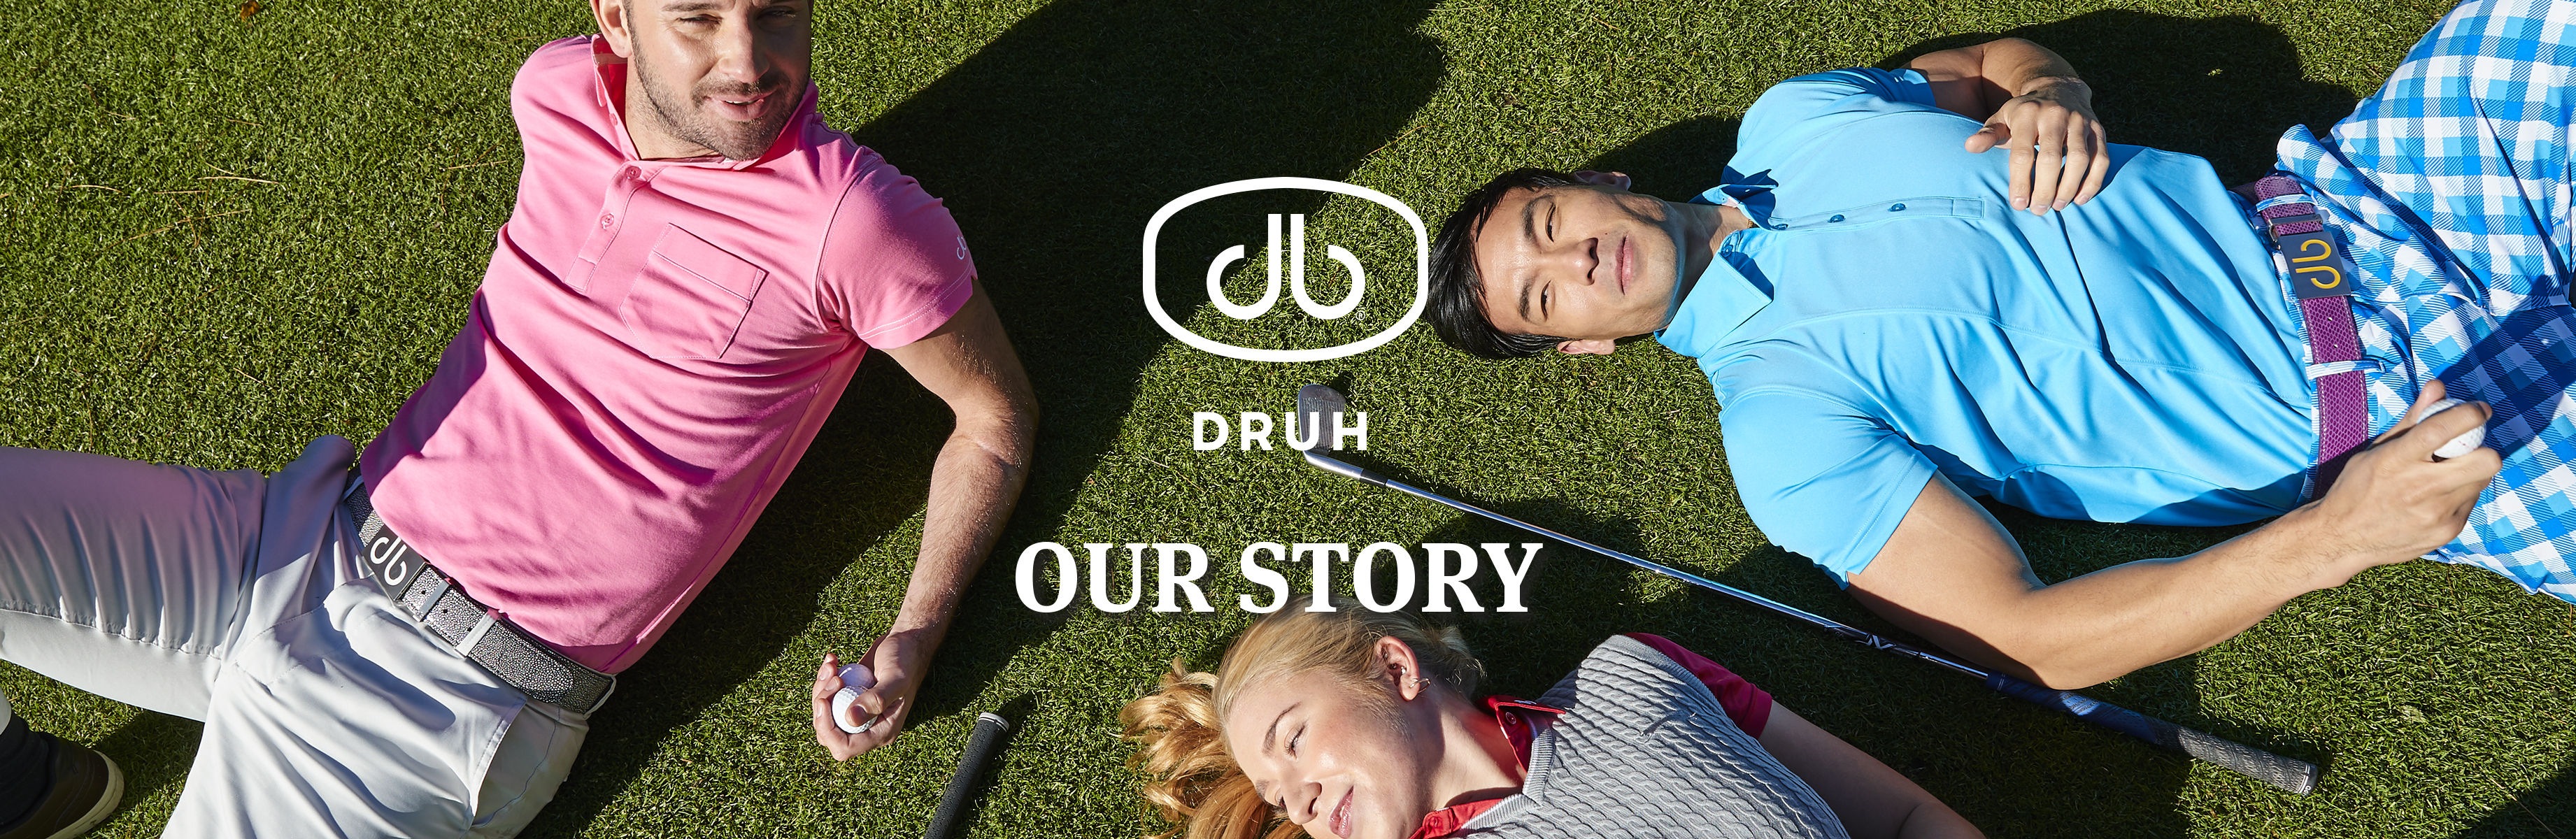 druh our story uk